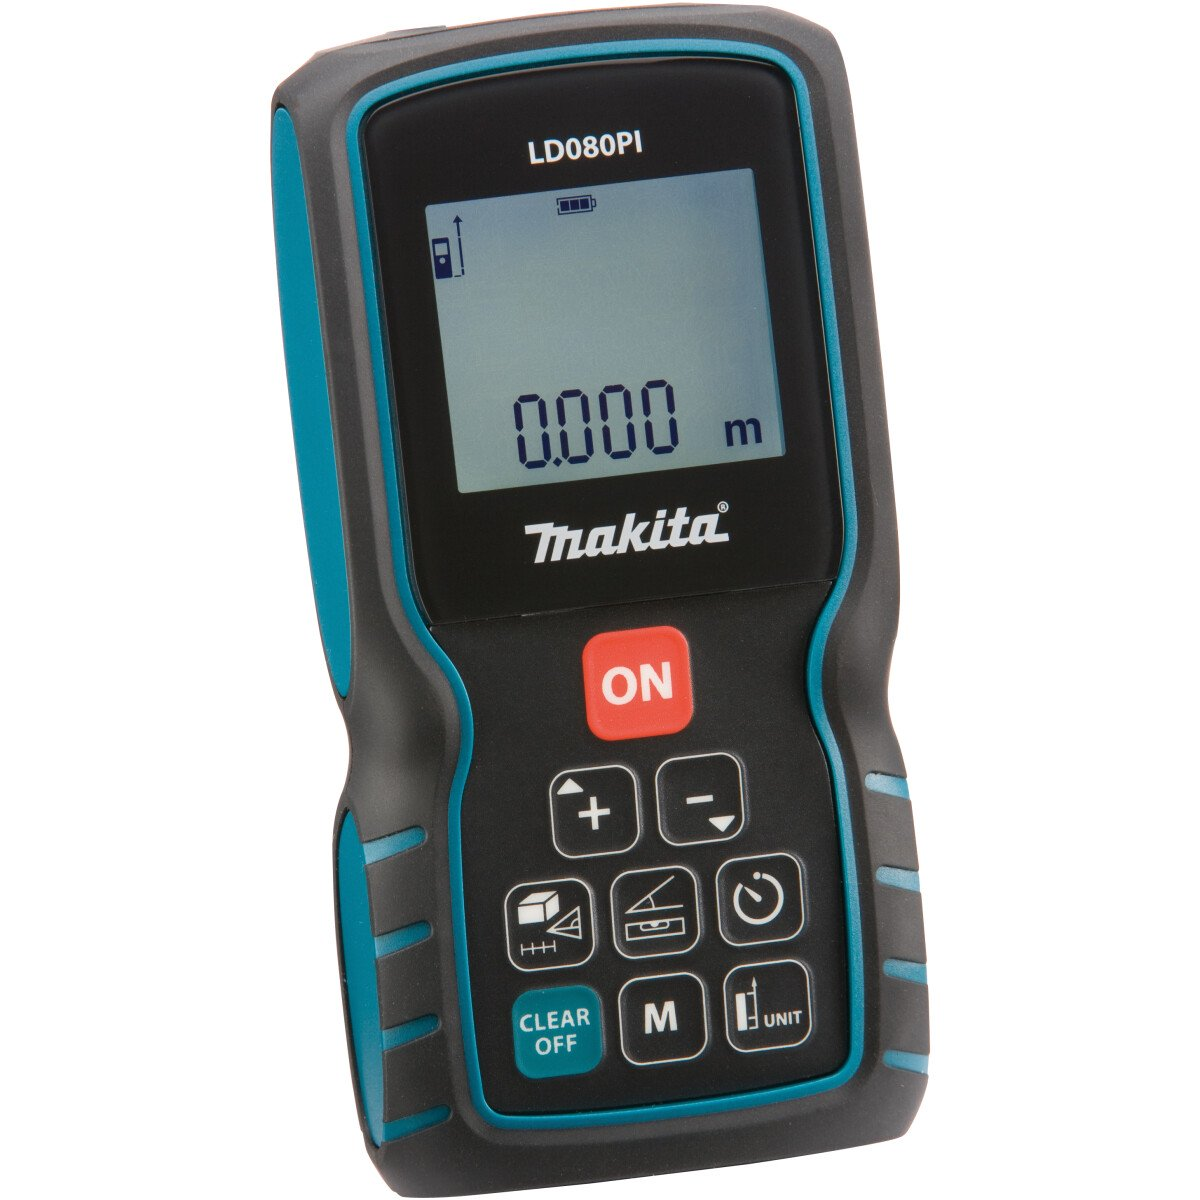 Makita LD080PI 80m Laser Distance Measure with Inclination Sensor